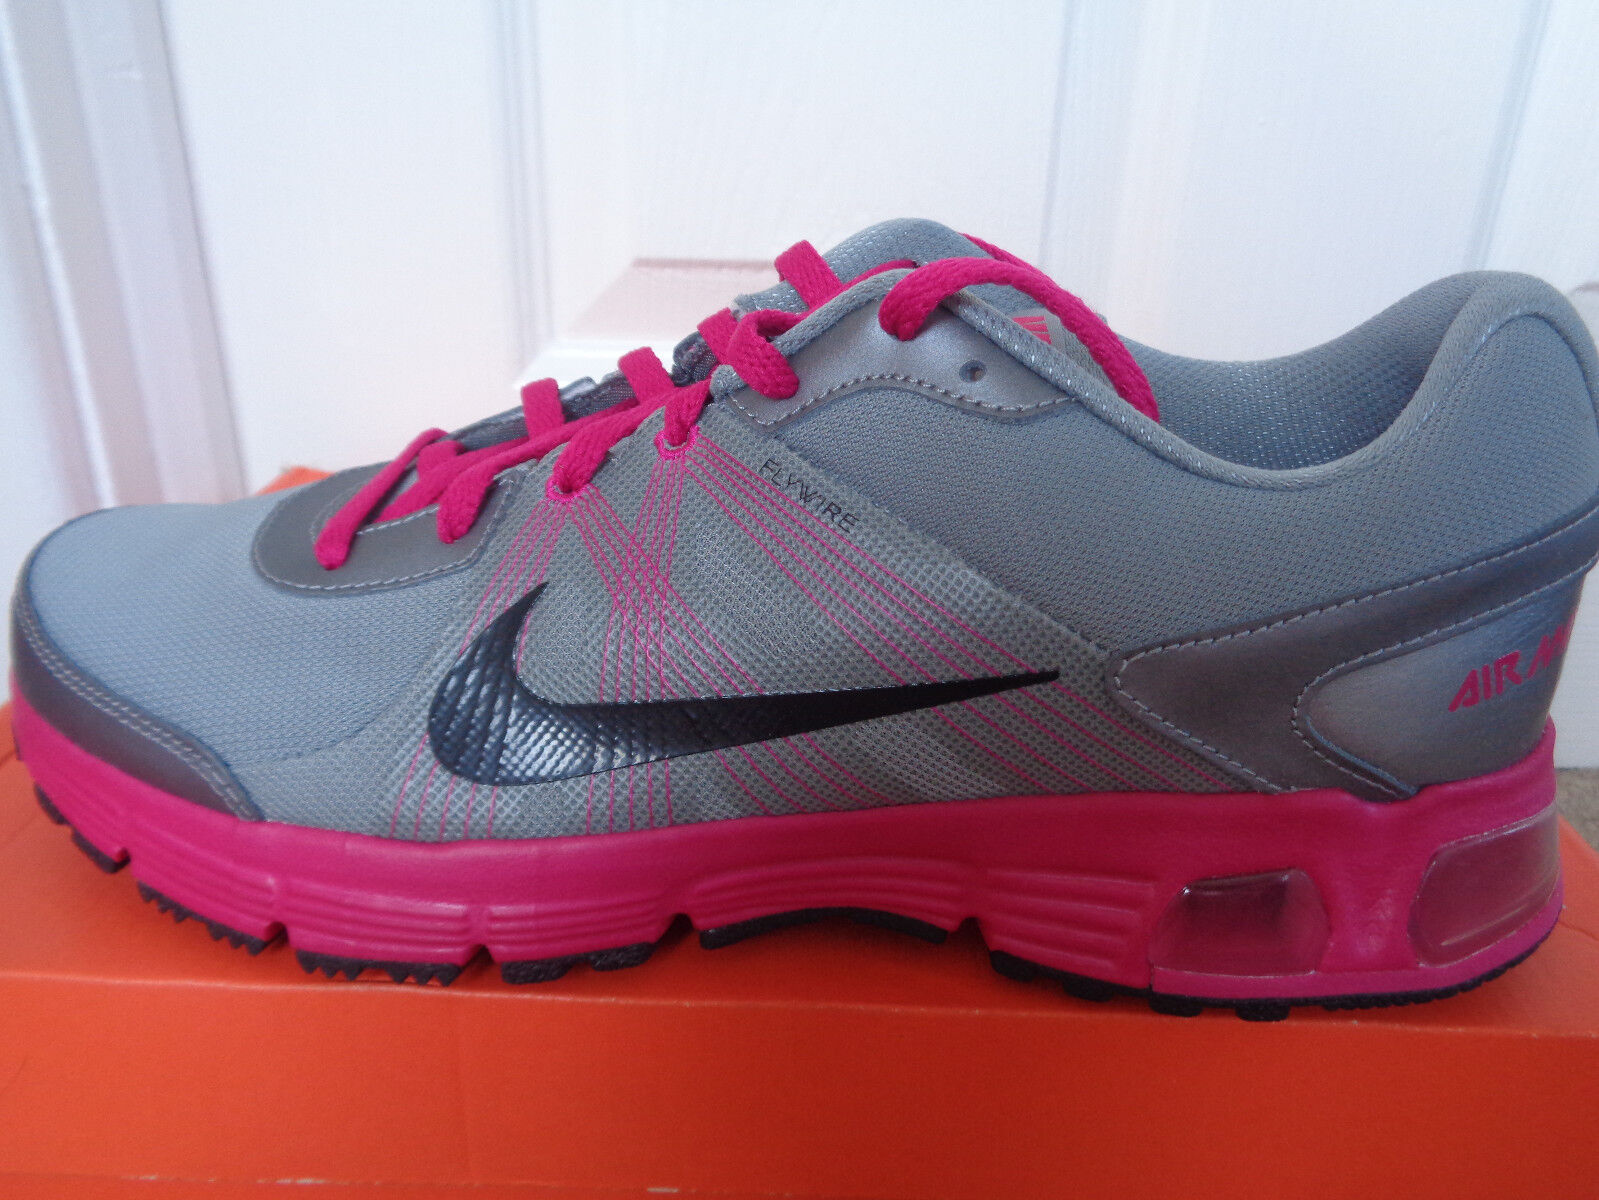 Nike Air Max courir Lite 3 wmns trainers  chaussures  488167 008 uk 8.5 eu 43 us 11 NEW